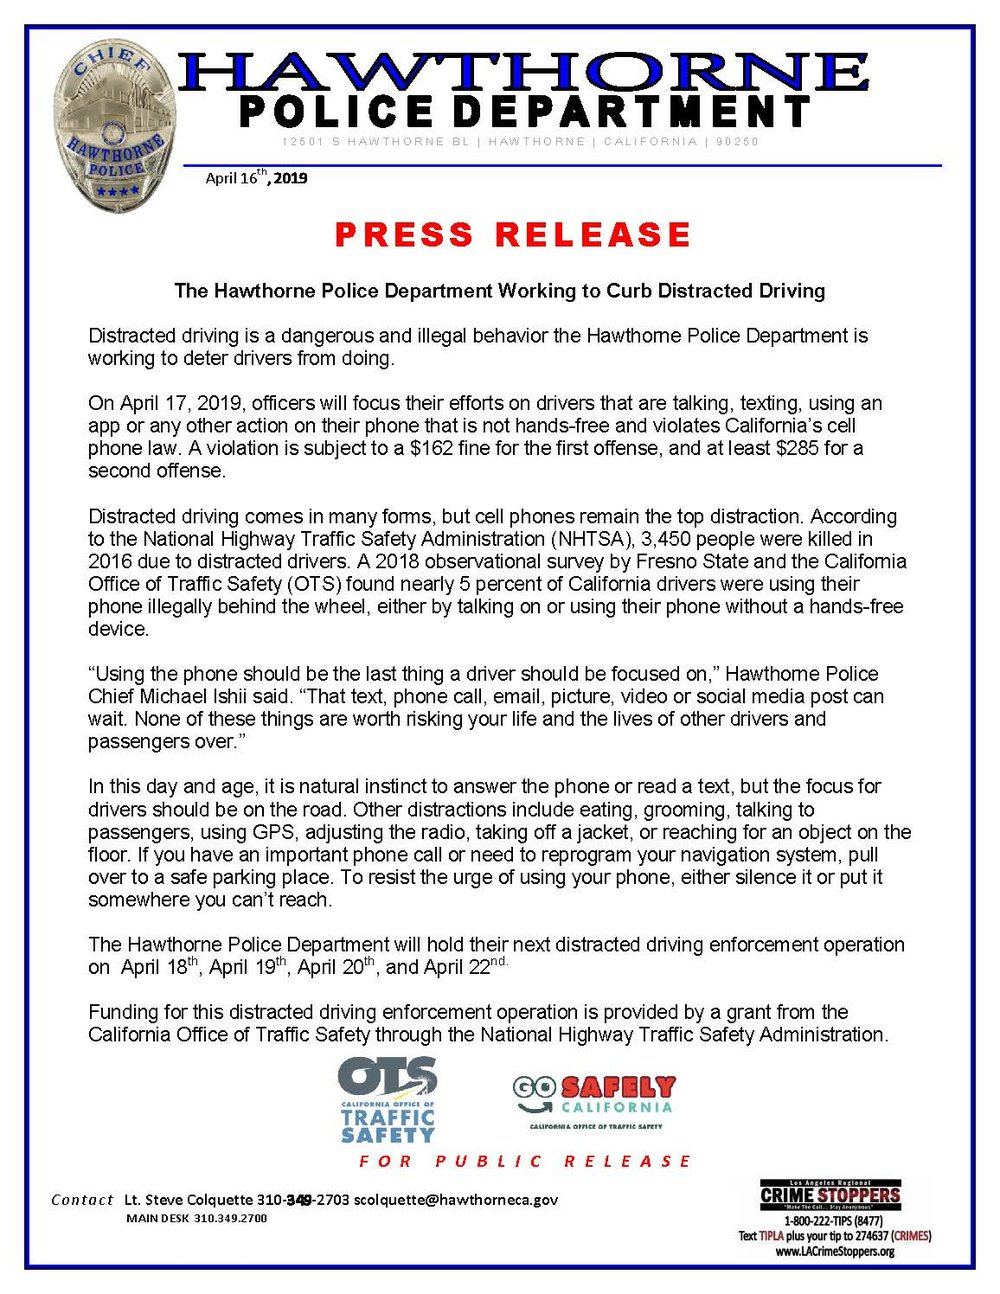 Curb Distracted Driving Press Release #2